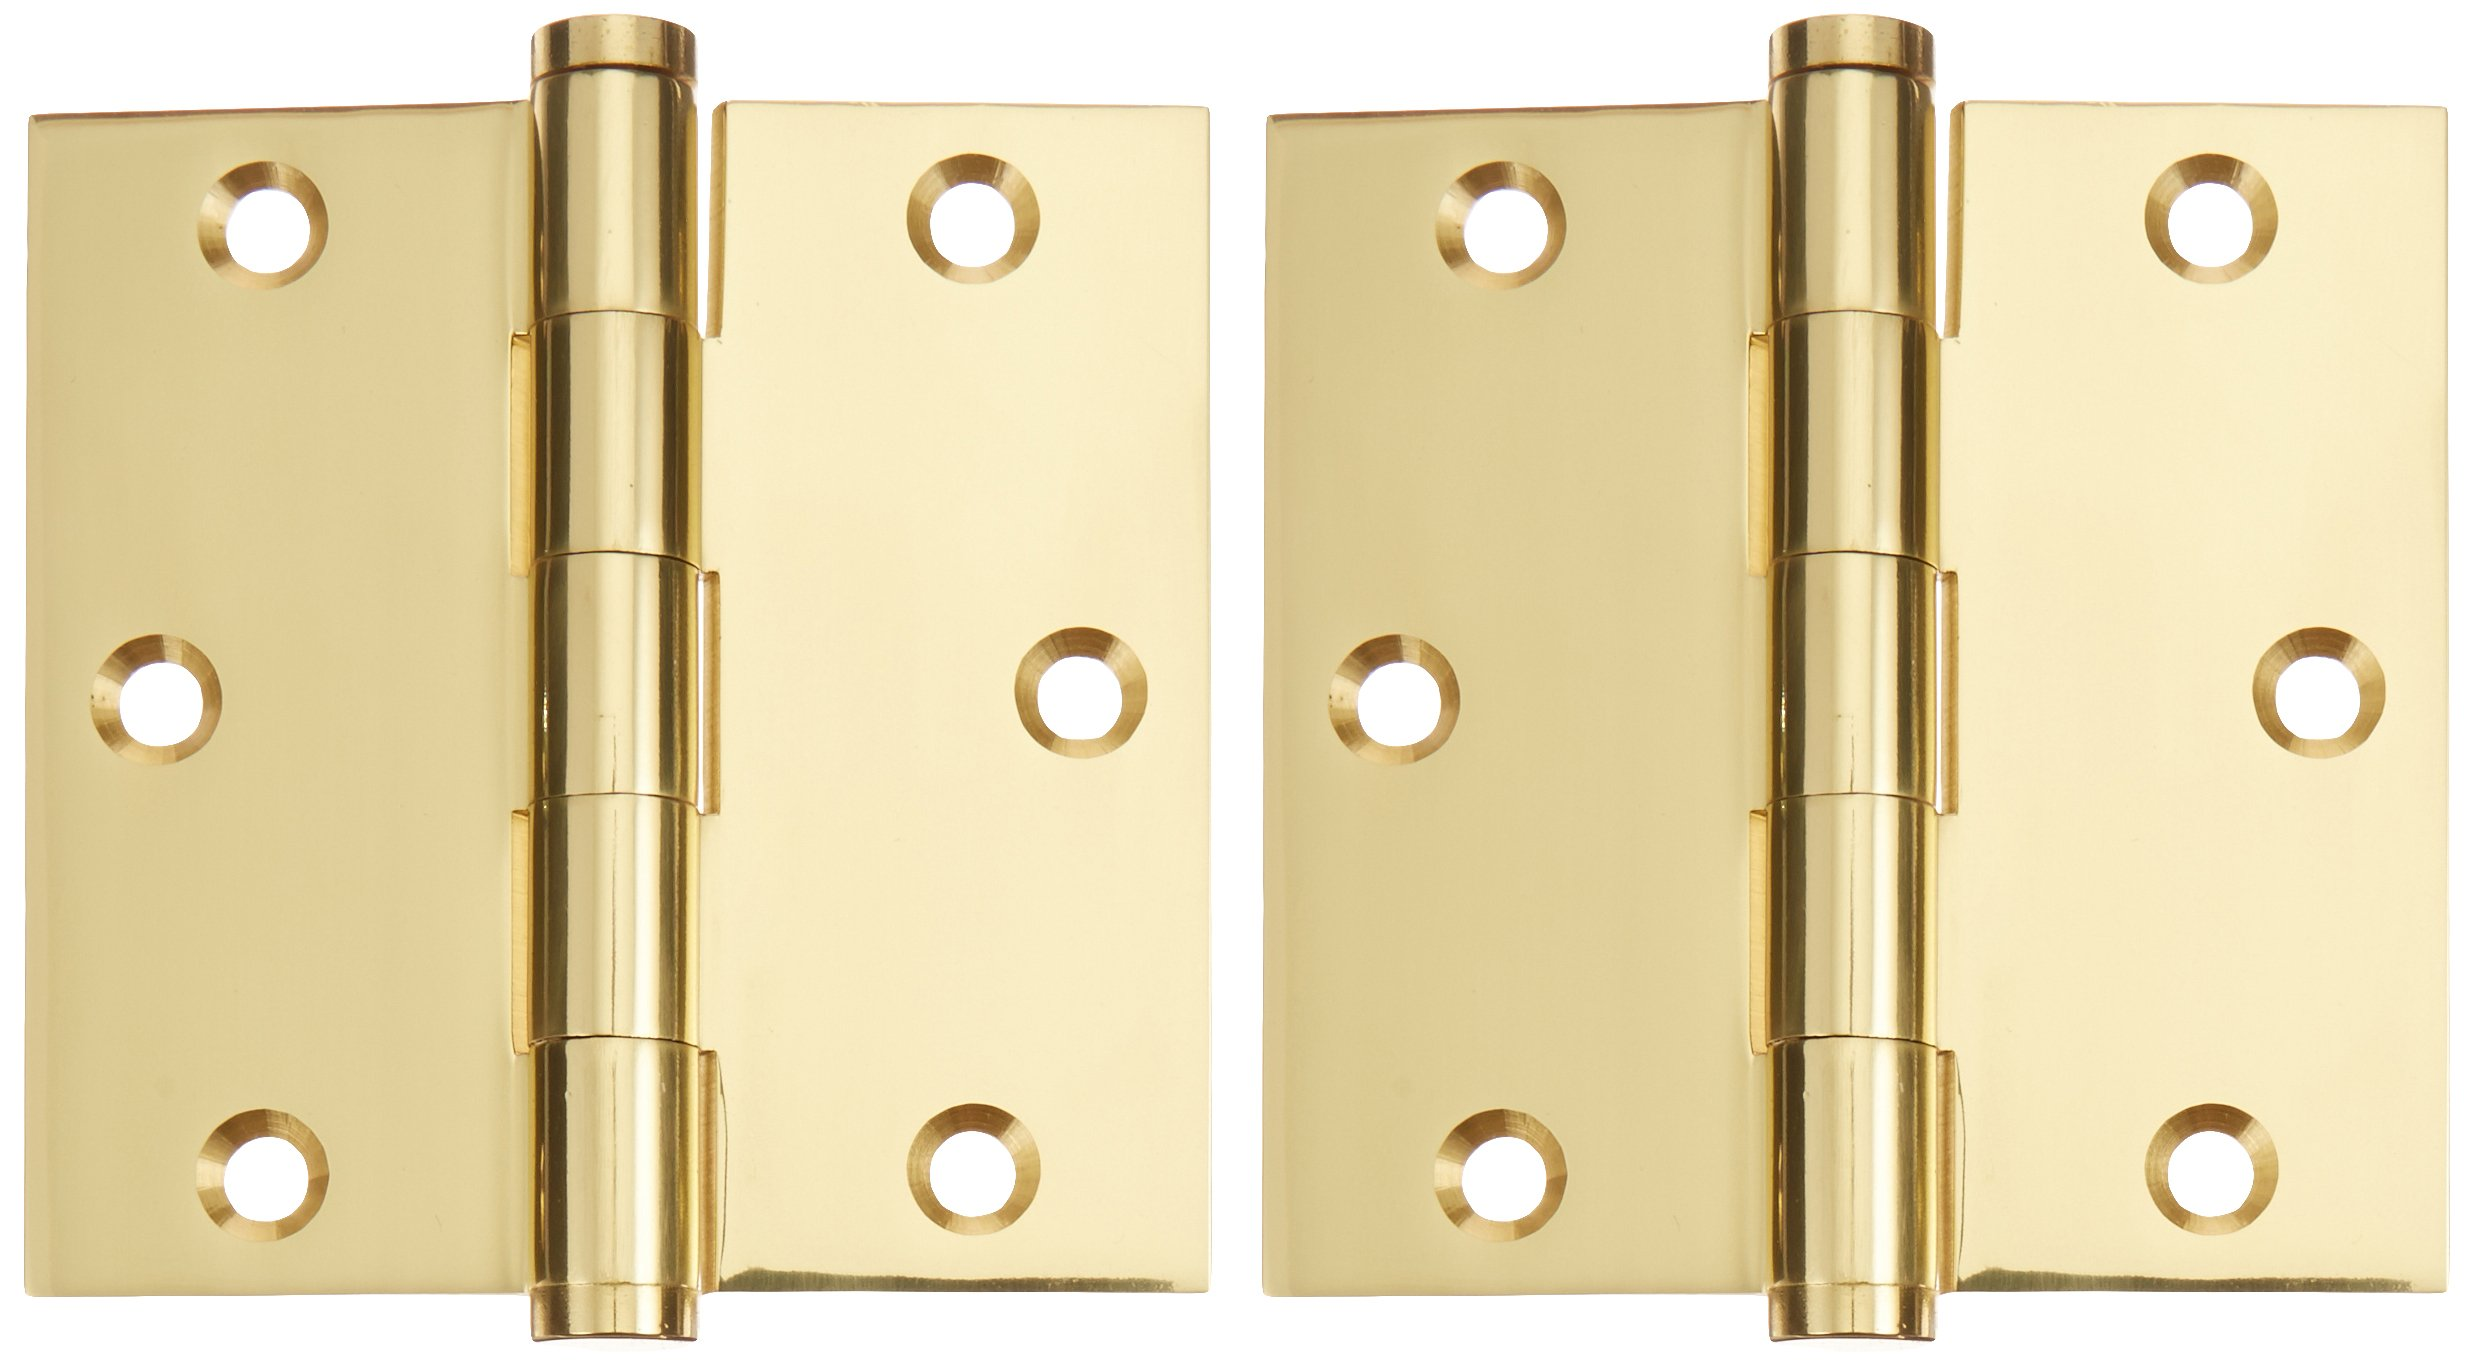 Deltana DSB353 Solid Brass 3 1/2-Inch x 3 1/2-Inch Square Hinge by Deltana